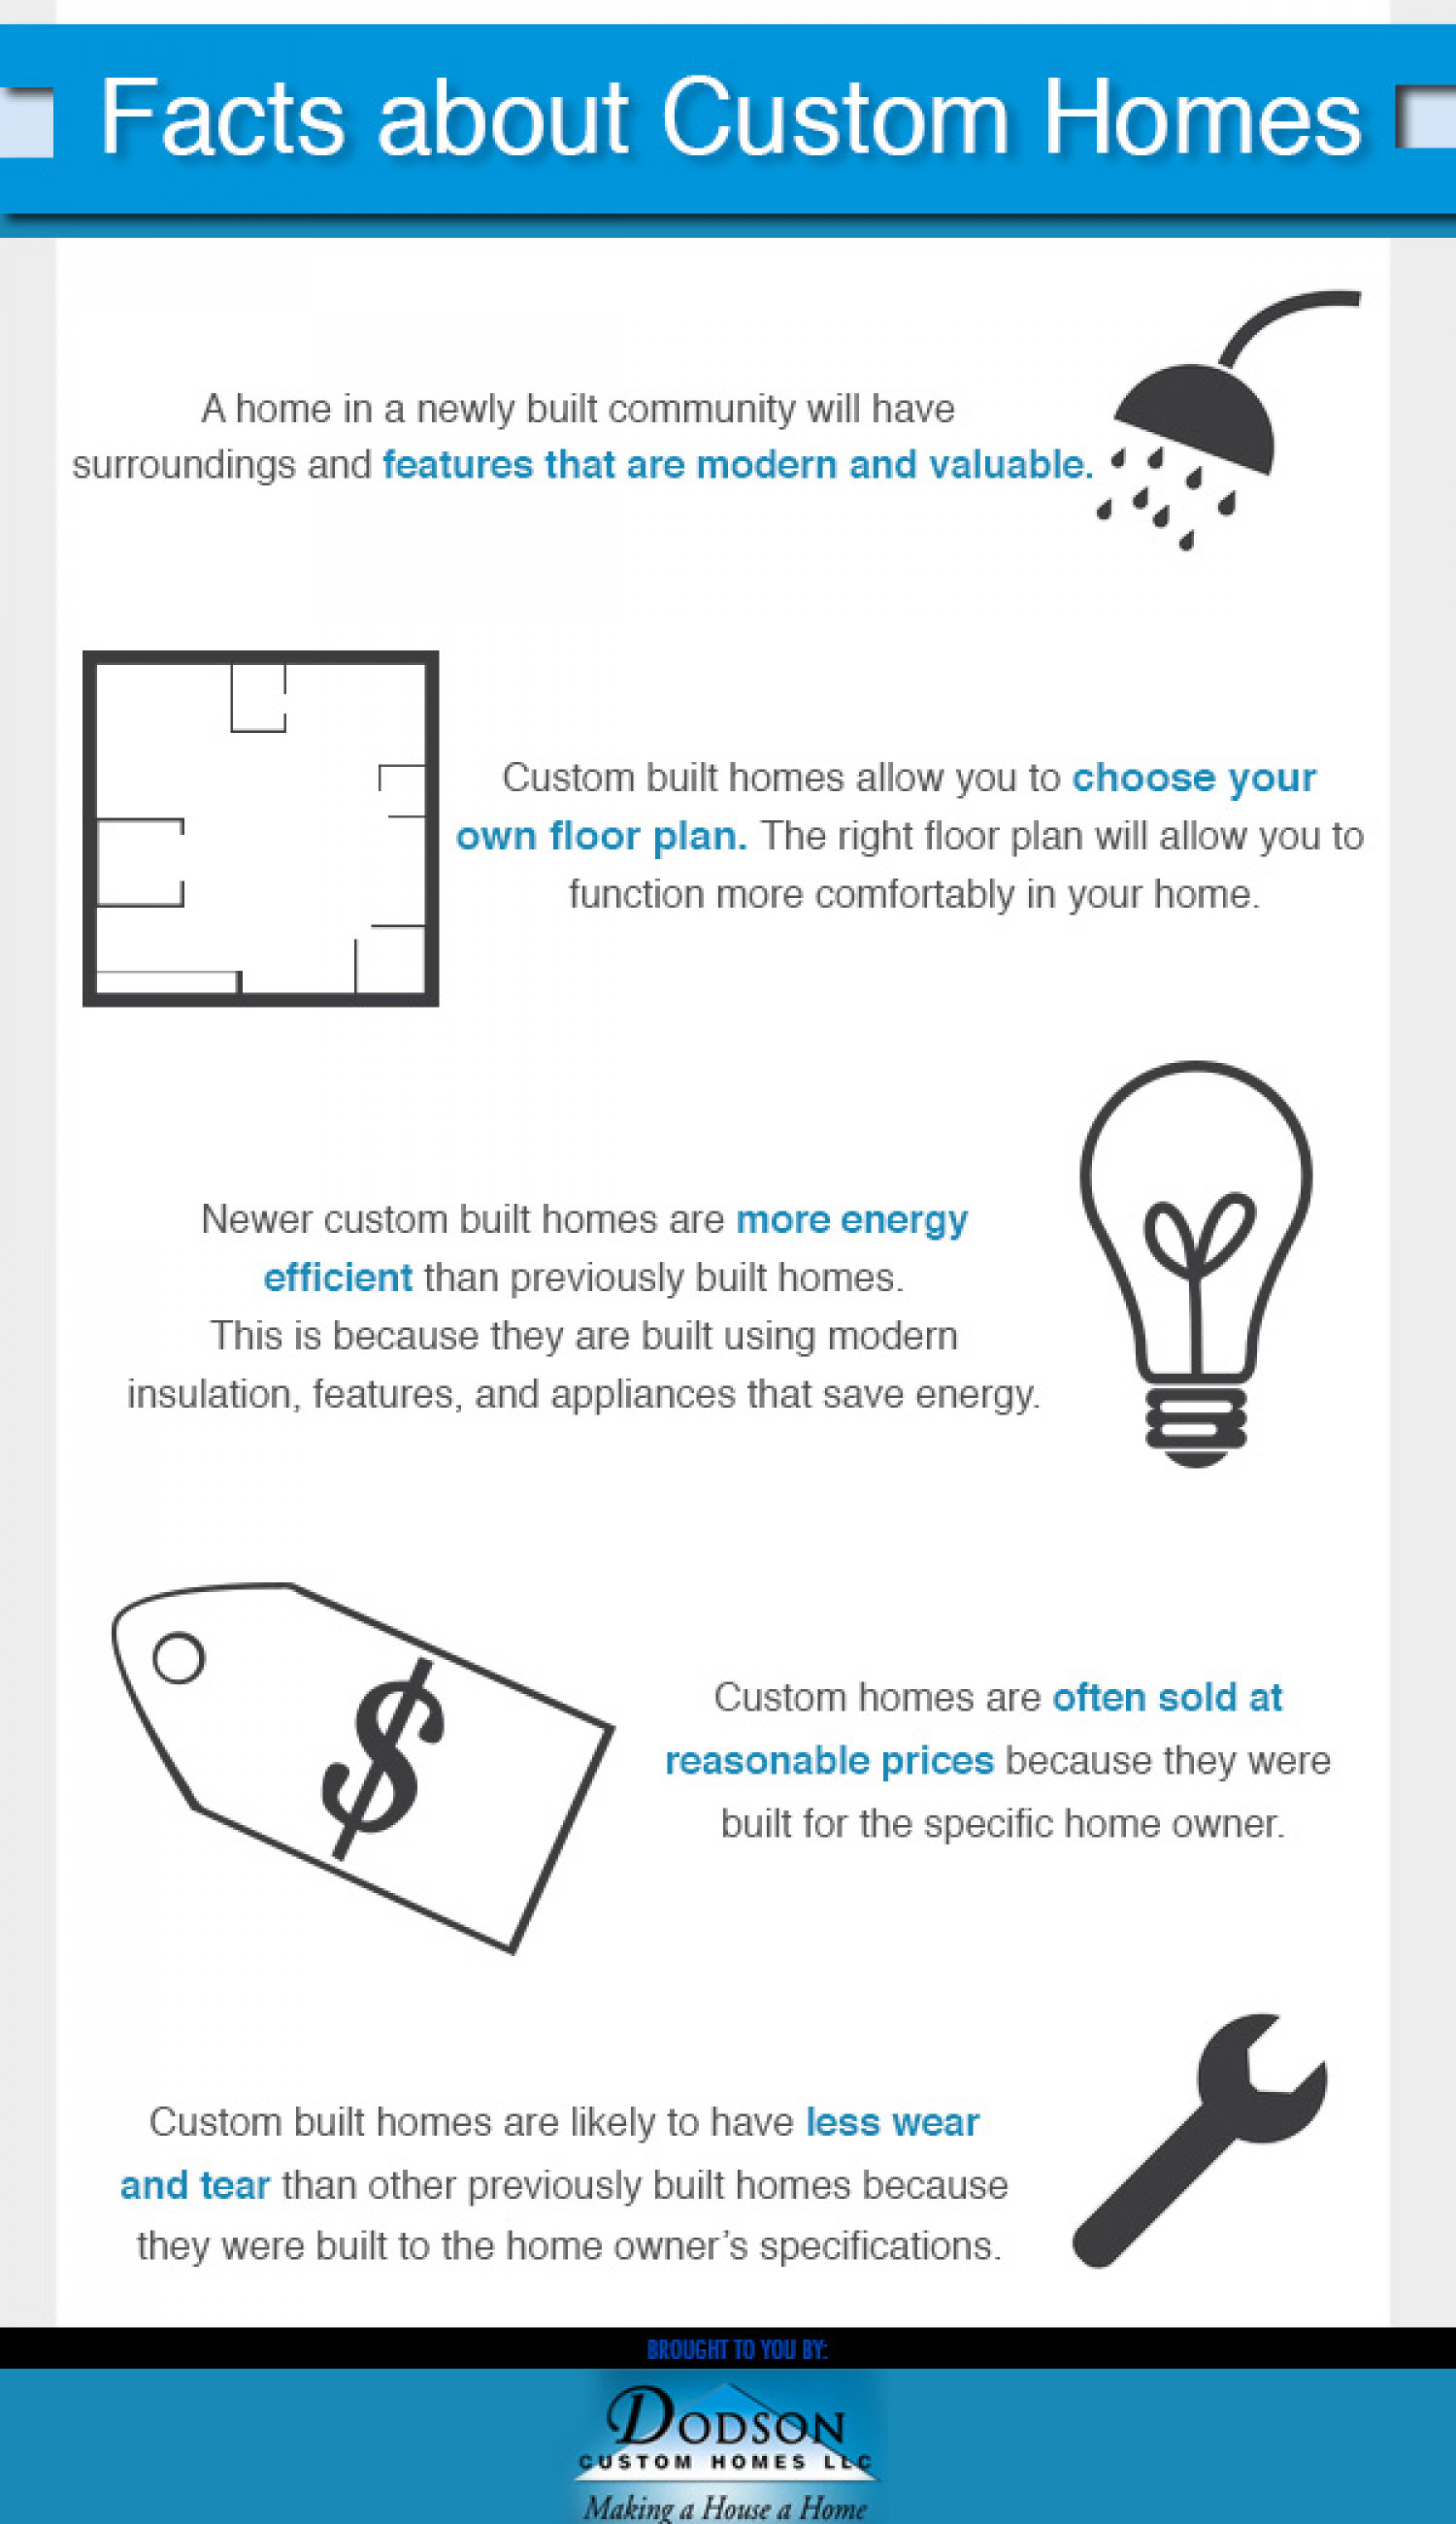 Facts About Custom Homes Infographic